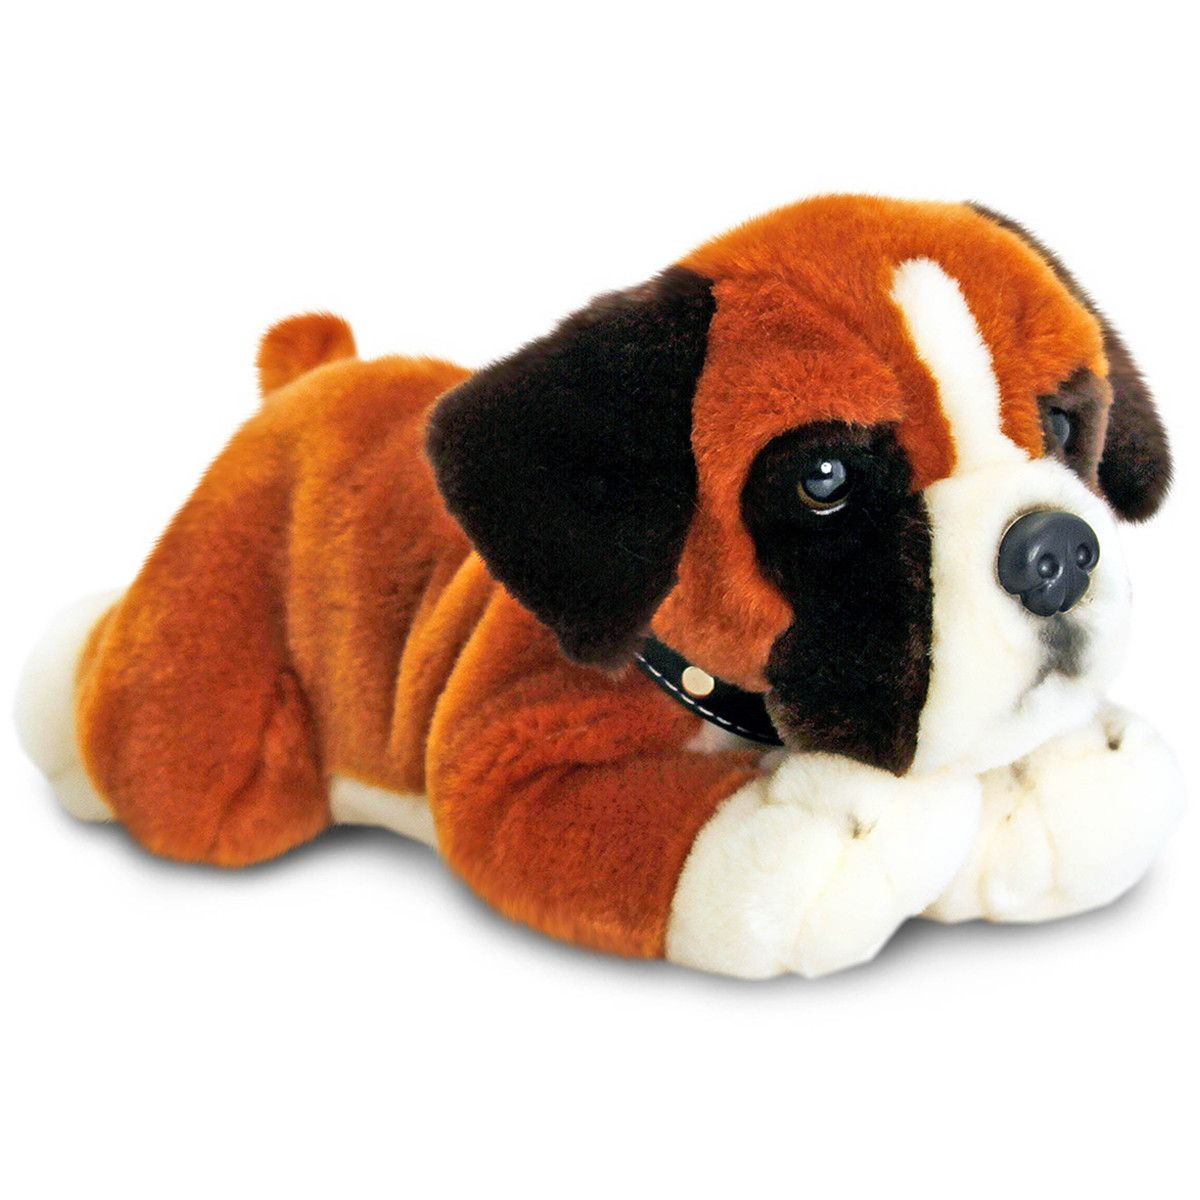 Boxer Dog Plush Toy Keel Toys Soft toy dog, Soft toy